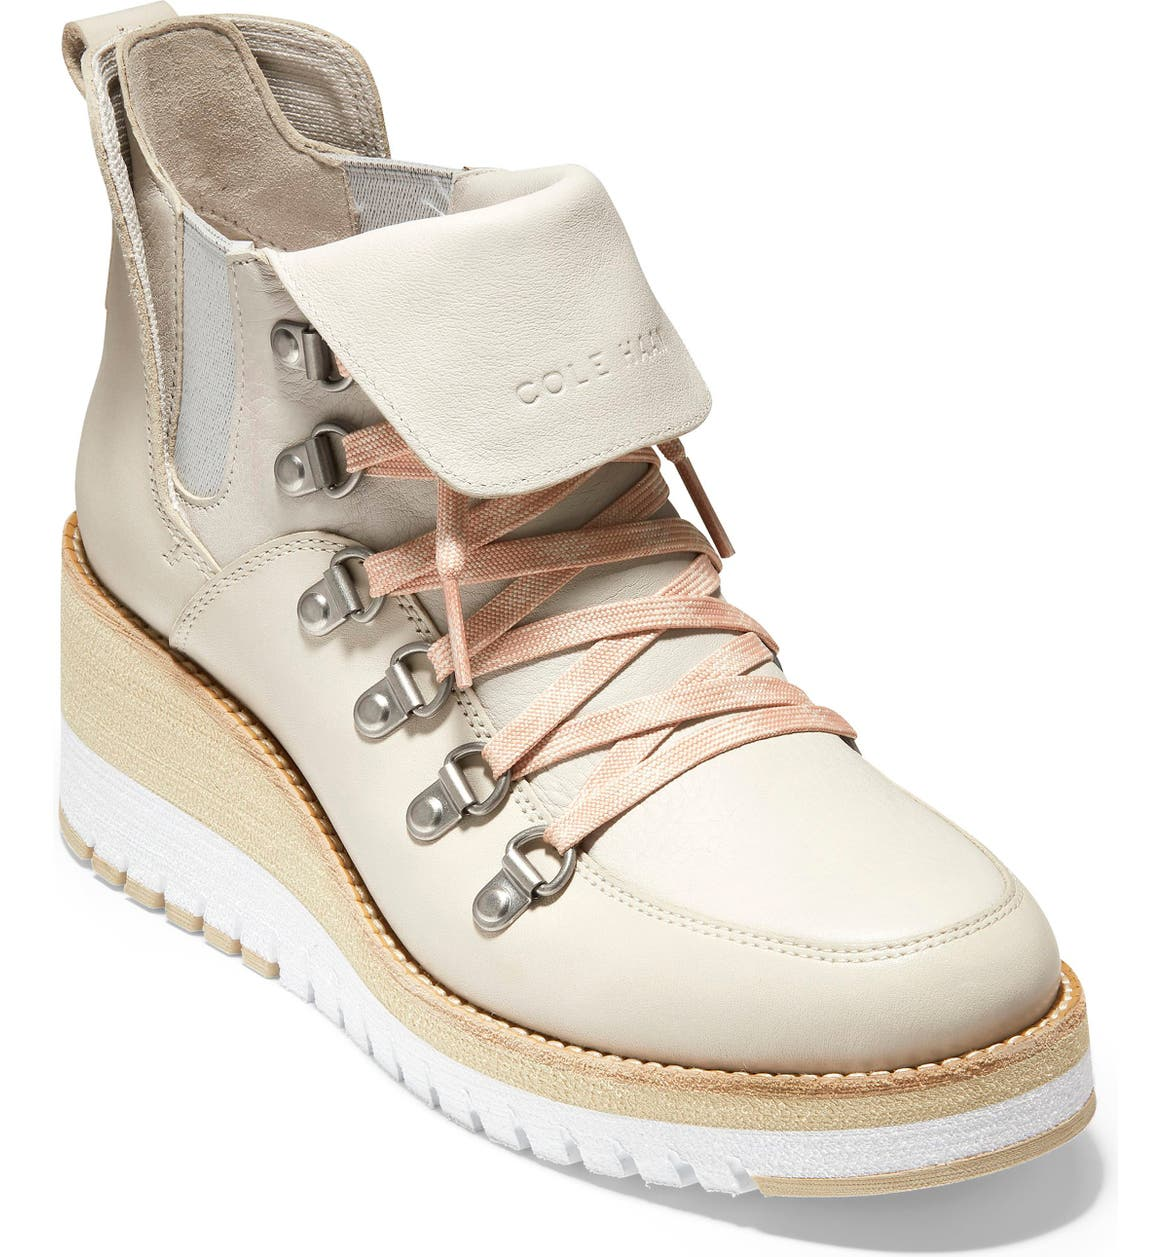 COLE HAAN ZeroGrand Waterproof Wedge Hiker Boot, Main, color, PUMICE STONE LEATHER